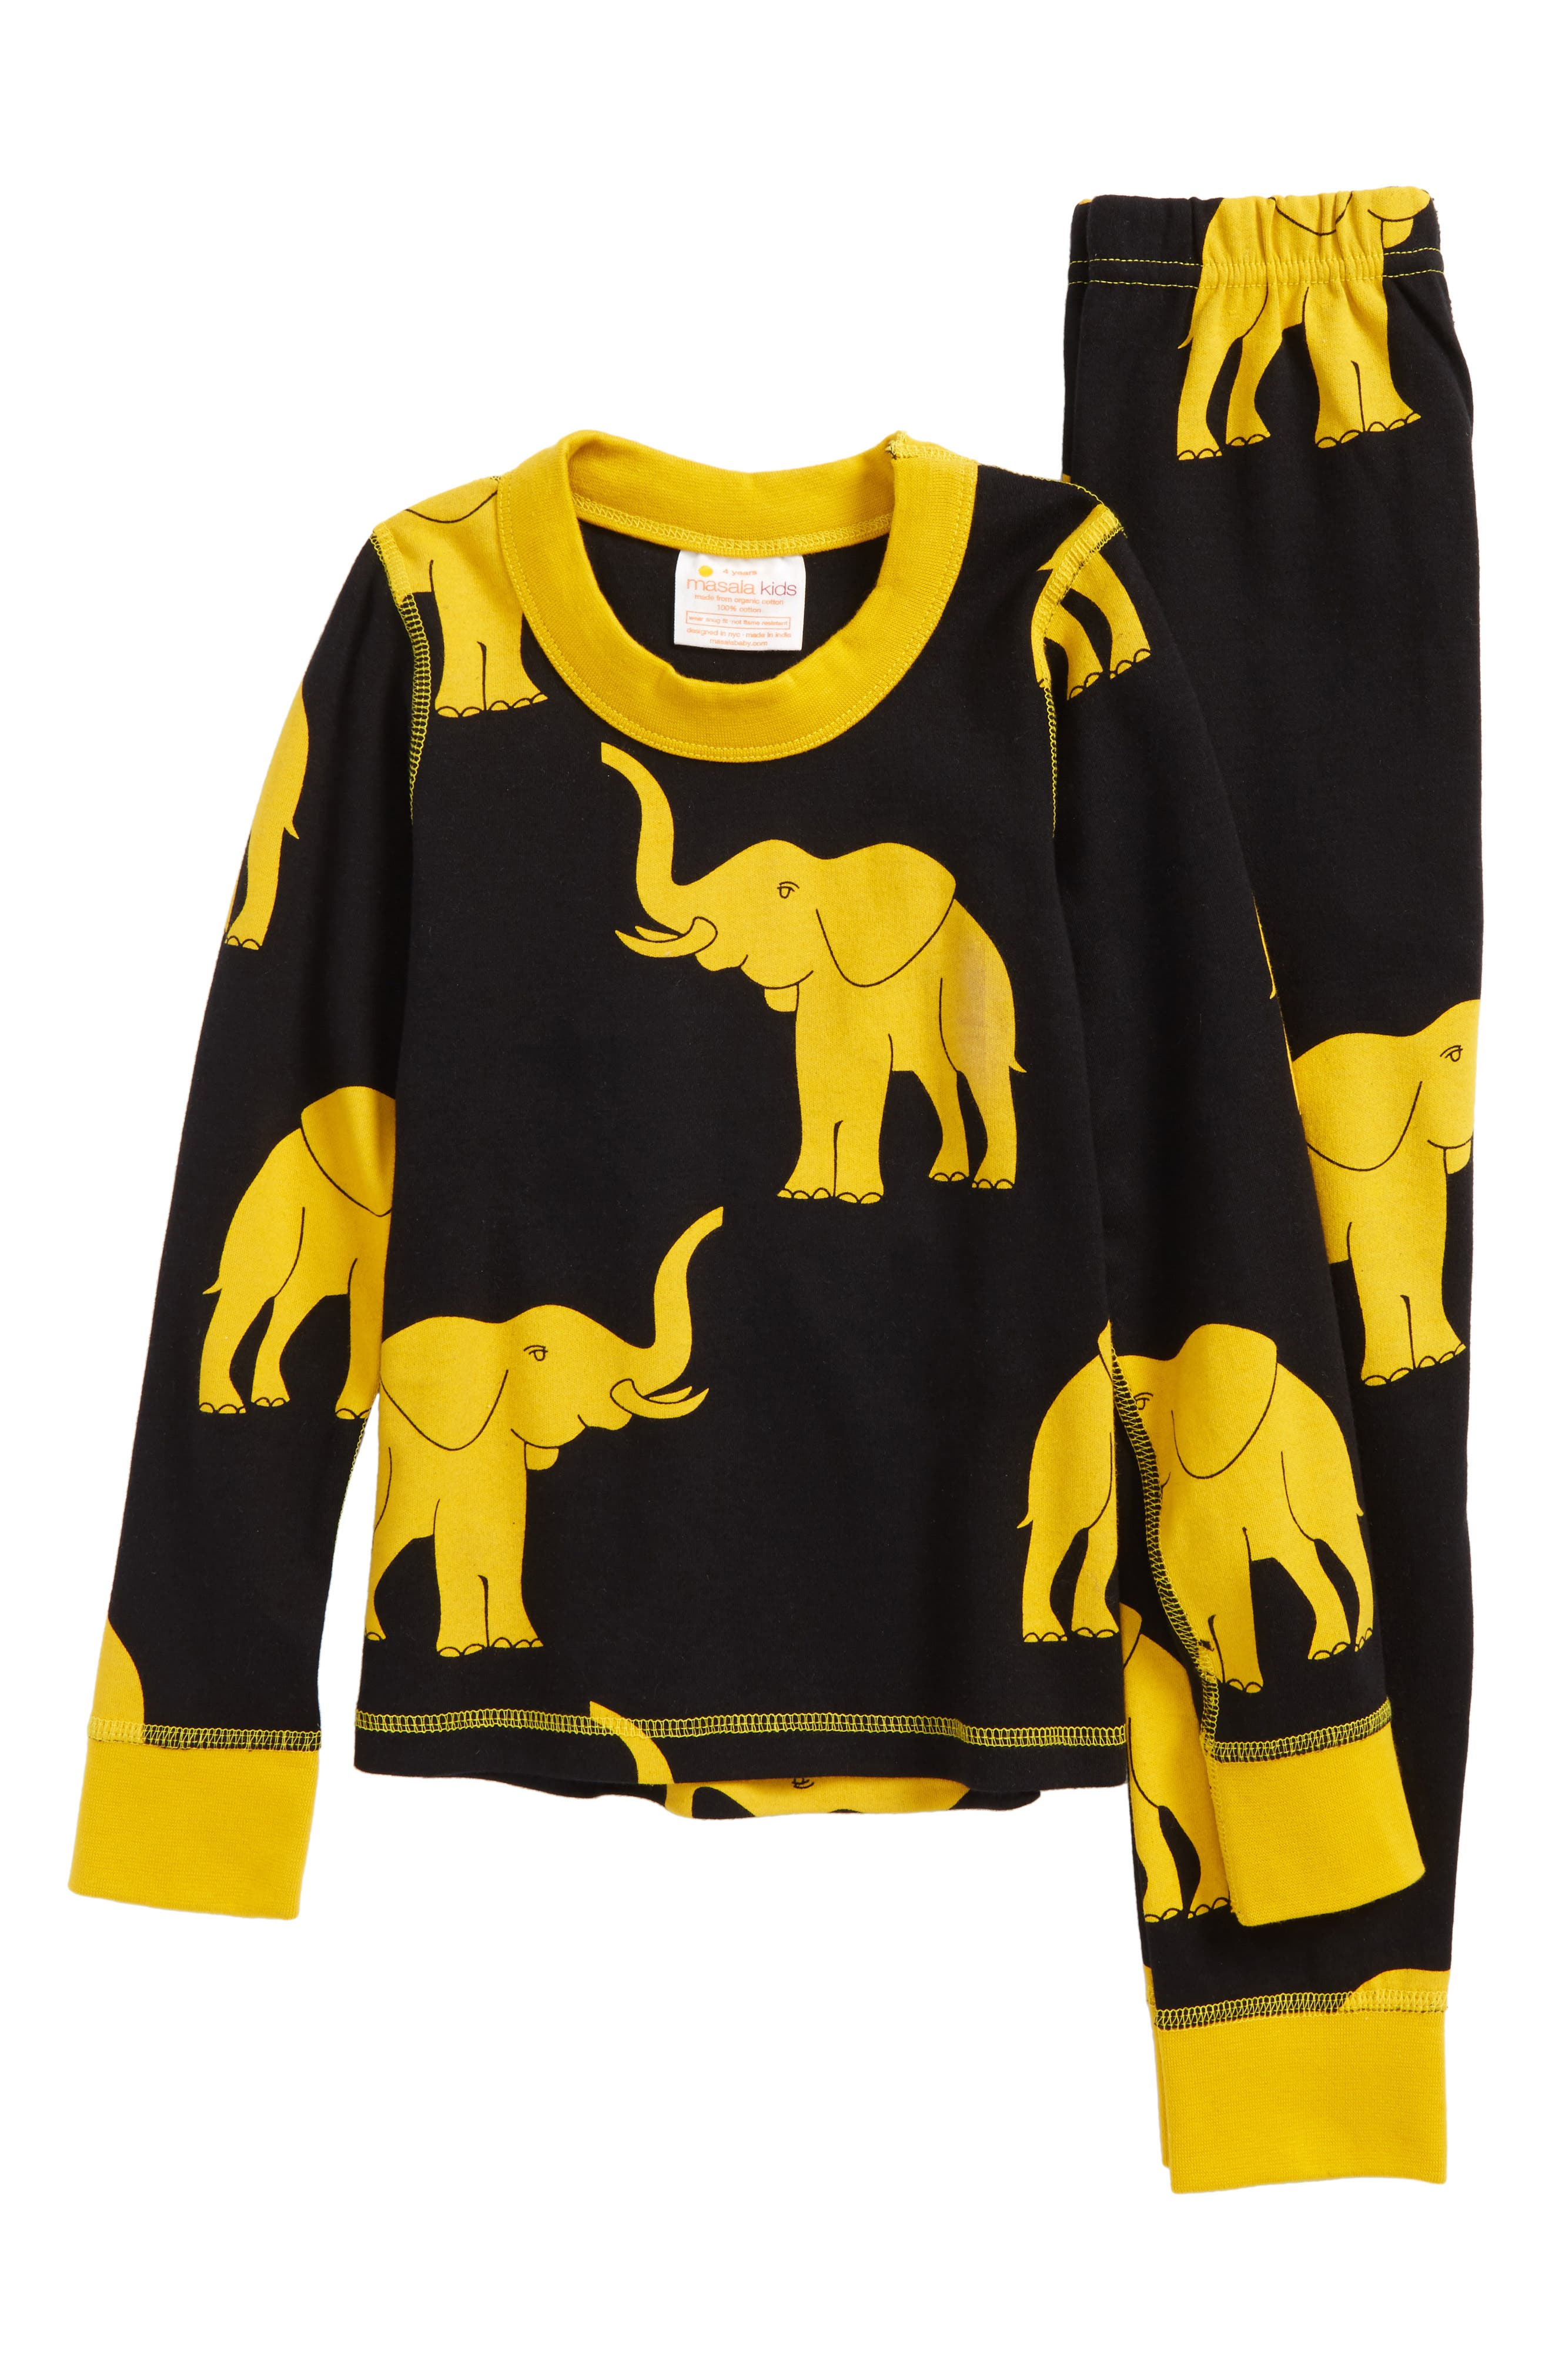 Main Image - Masalababy Elephant Organic Cotton Fitted Two-Piece Pajamas (Toddler Boys, Little Boys & Big Boys)